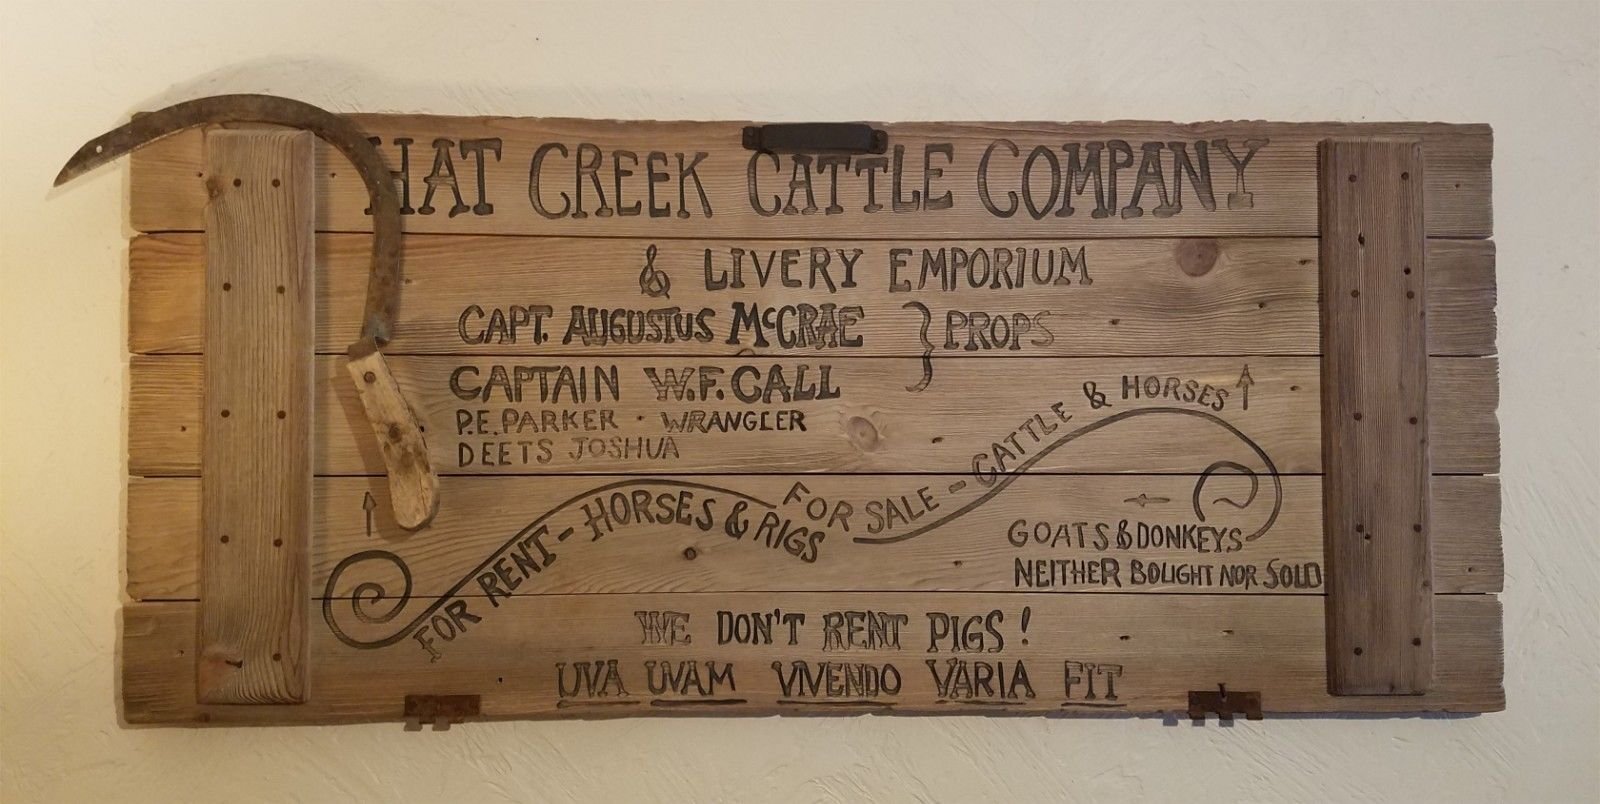 Hat Creek Cattle Company Lonesome Dove Replica Sign Poystyrene For Sale Online Ebay Lonesome Dove Sign Hat Creek Cattle Company Plaque Sign